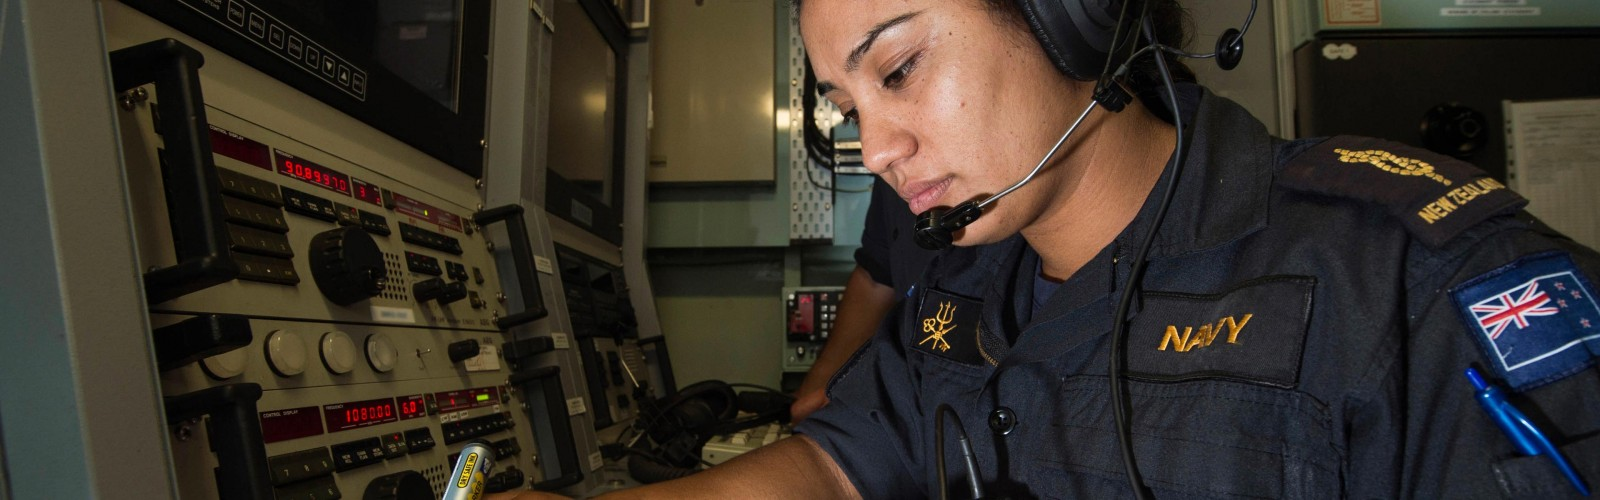 navy communications technician full width